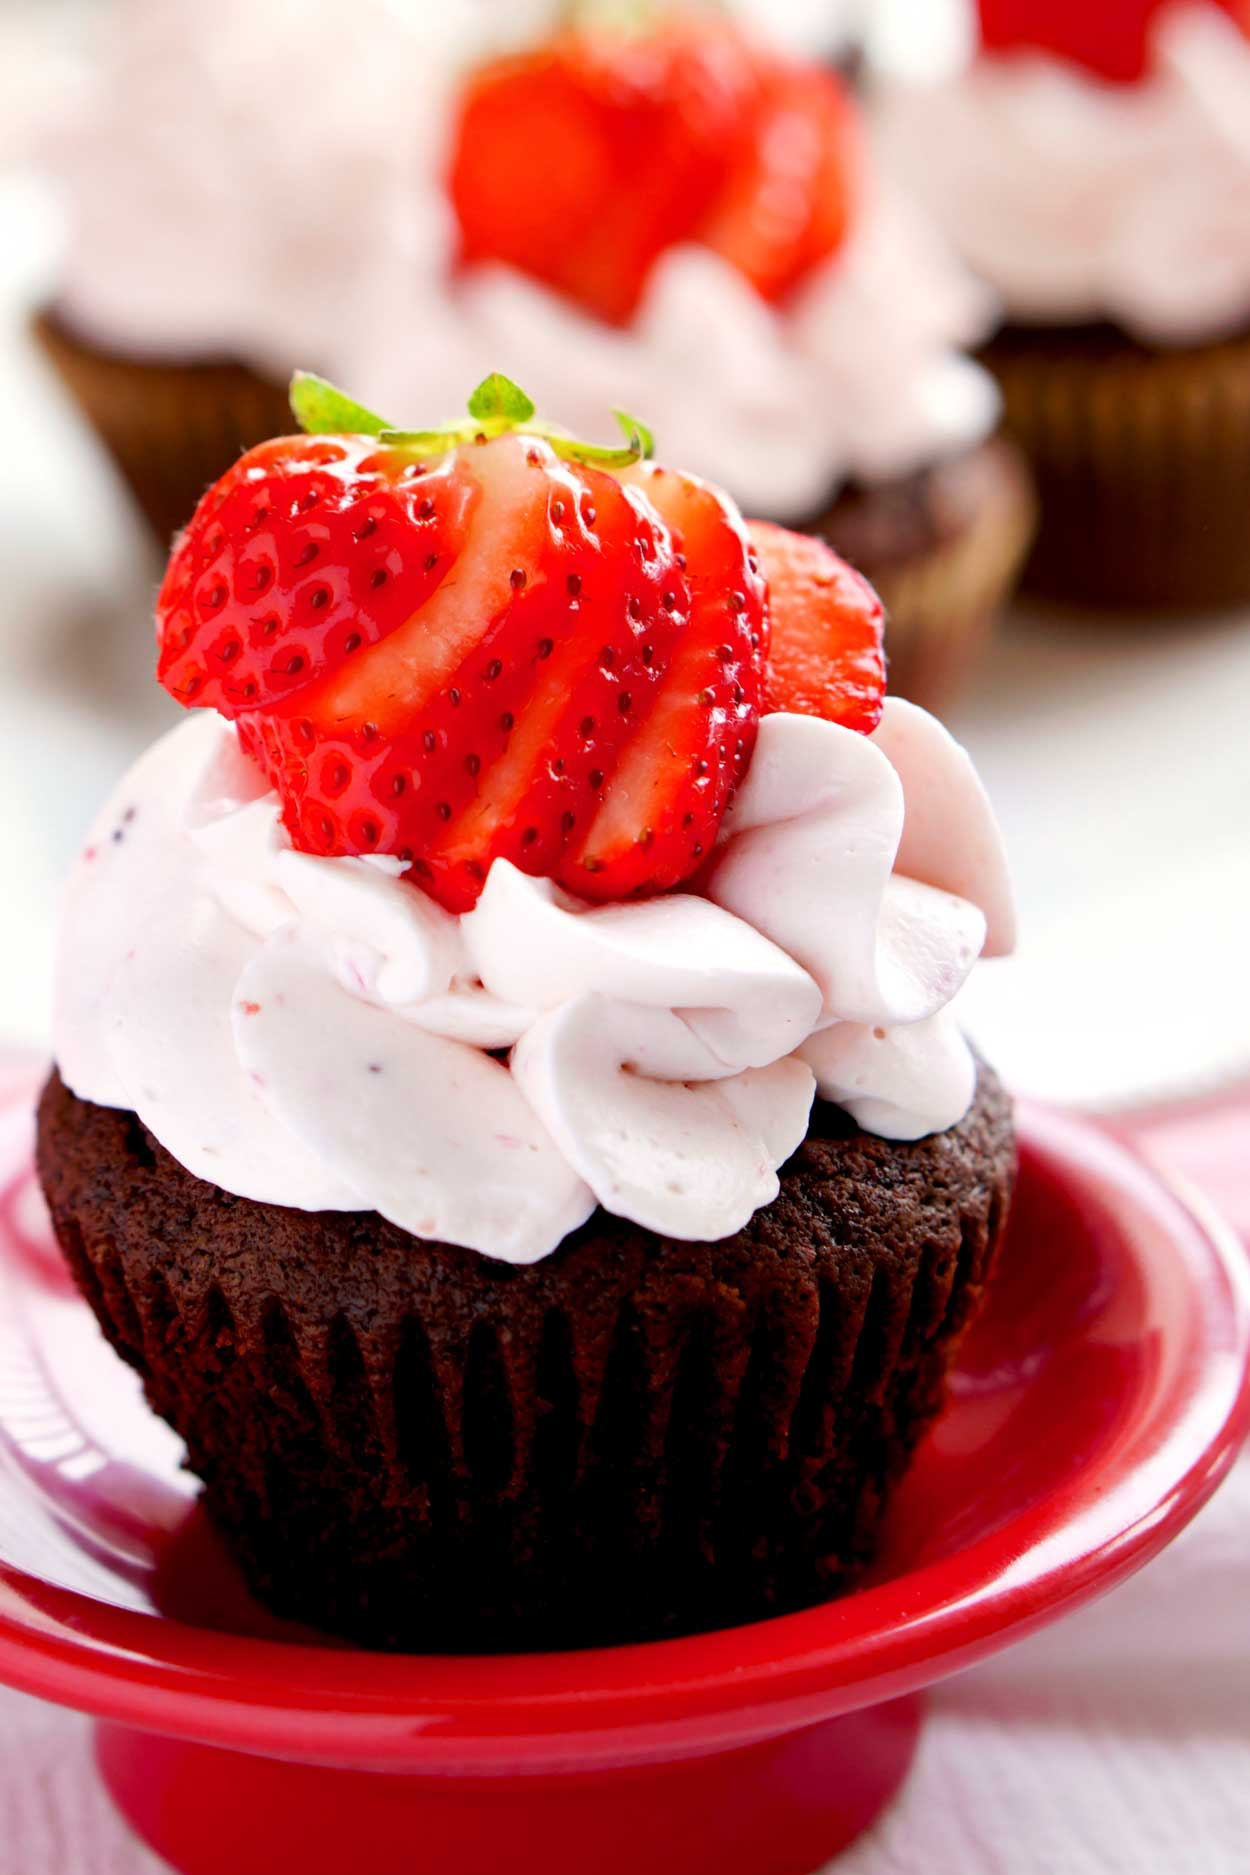 Easy homemade Chocolate Cupcakes.